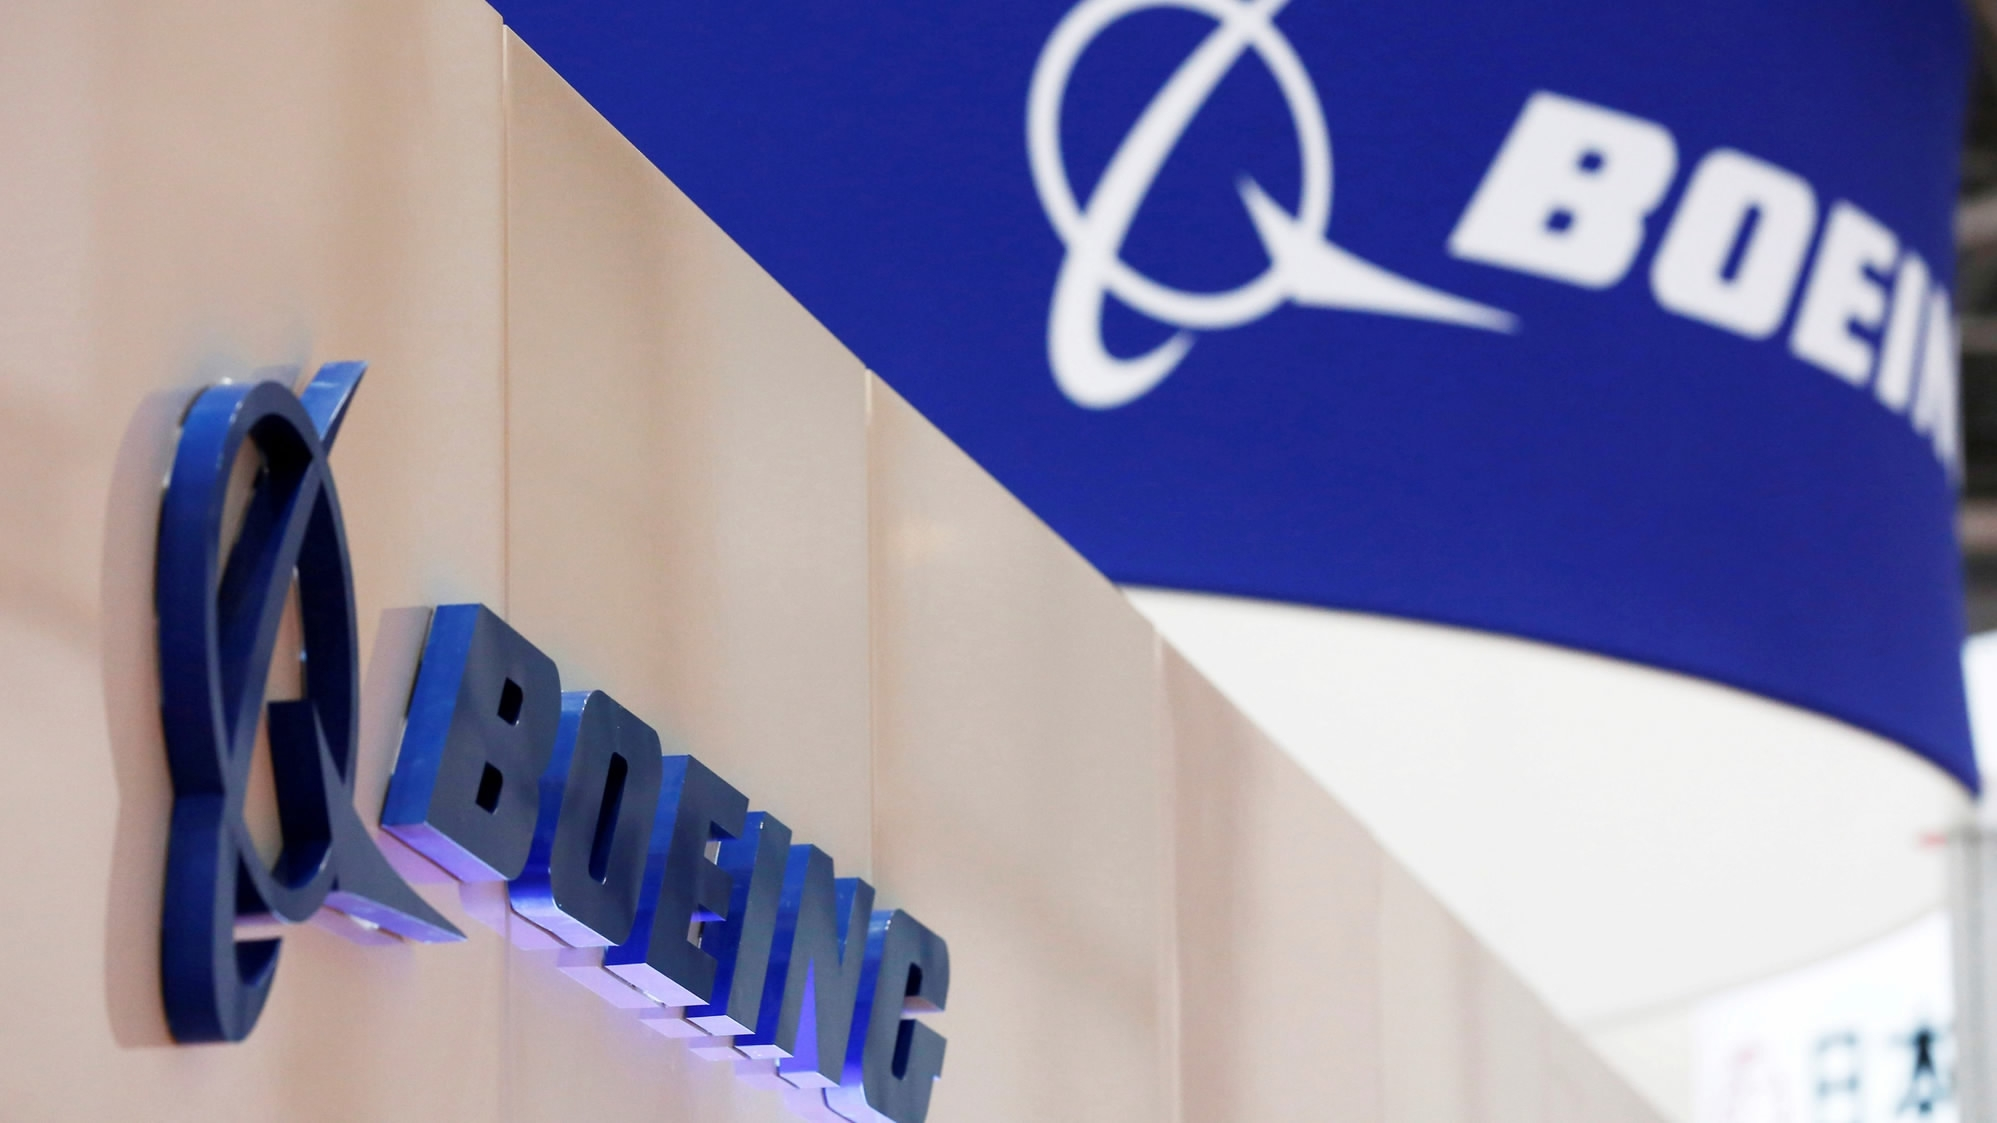 Boeing gets another setback